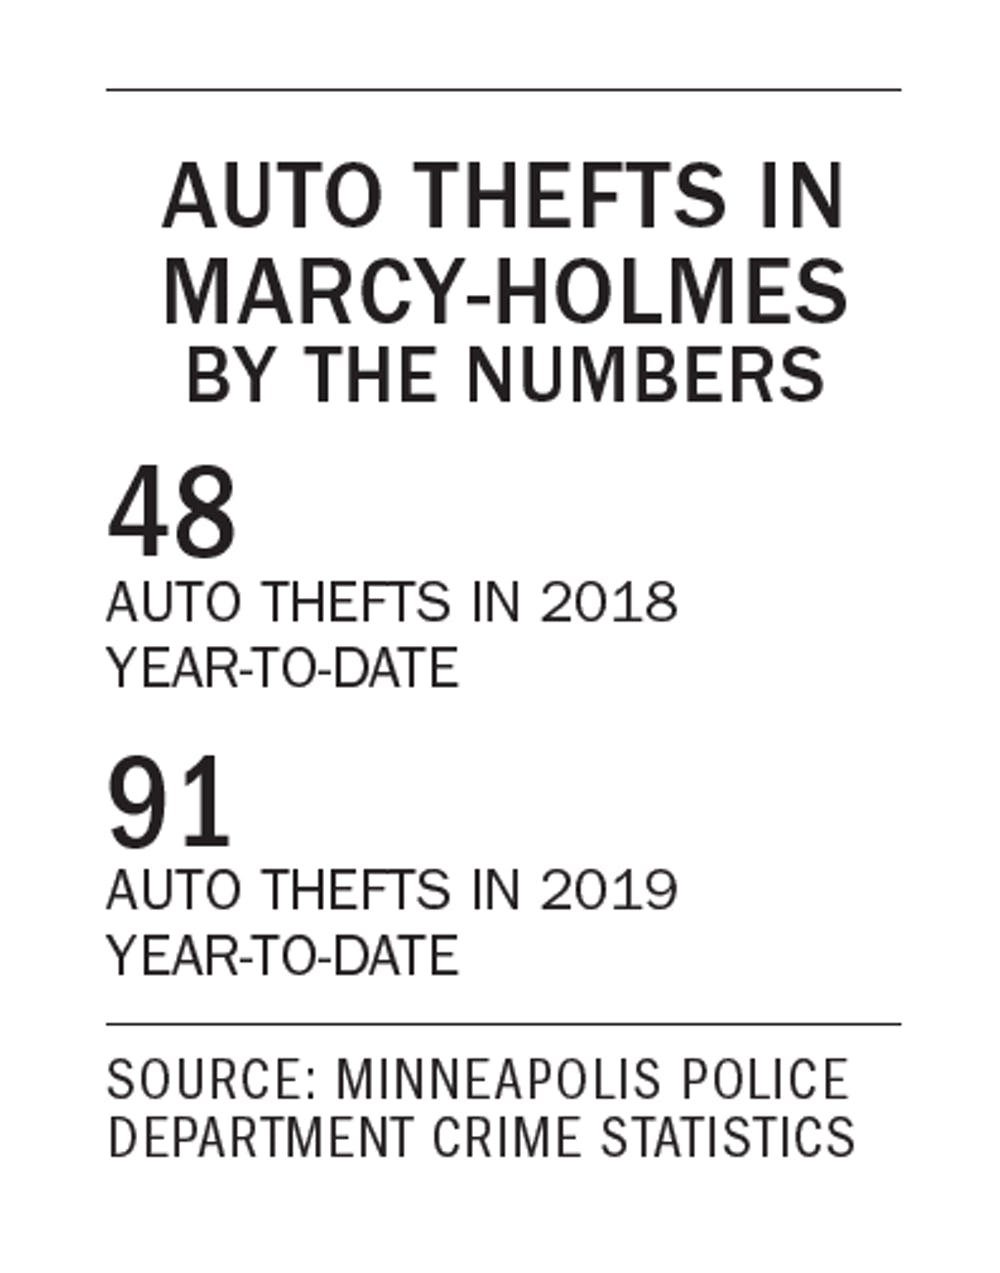 UMN Campus Crime Update: Auto thefts up in Marcy-Holmes